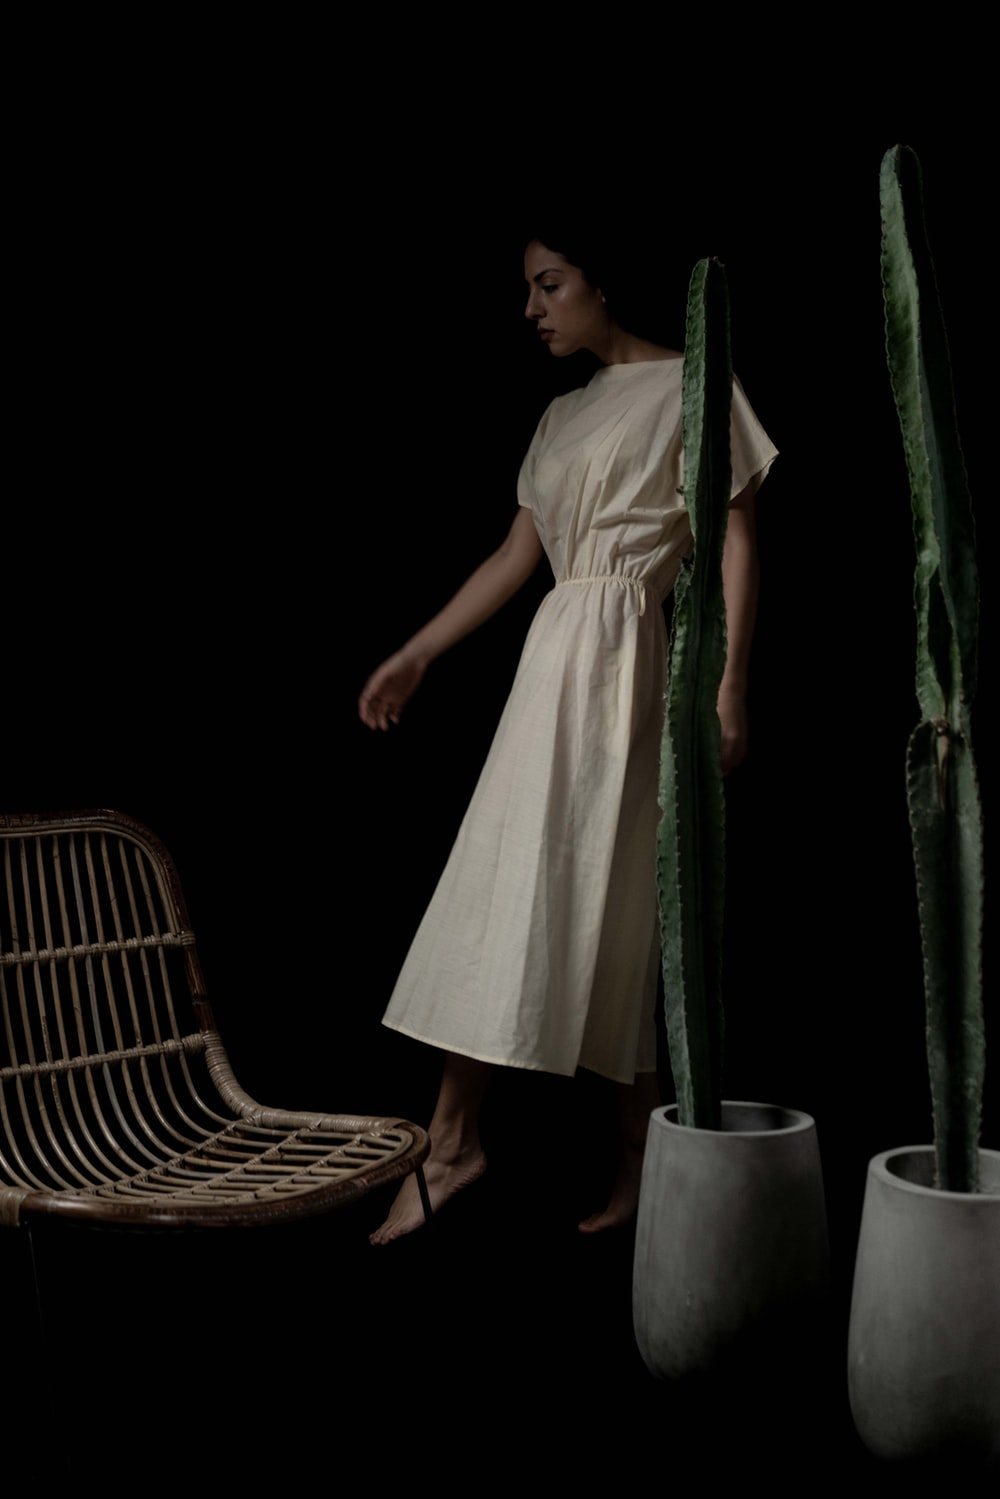 woman in white dress standing beside green curtain